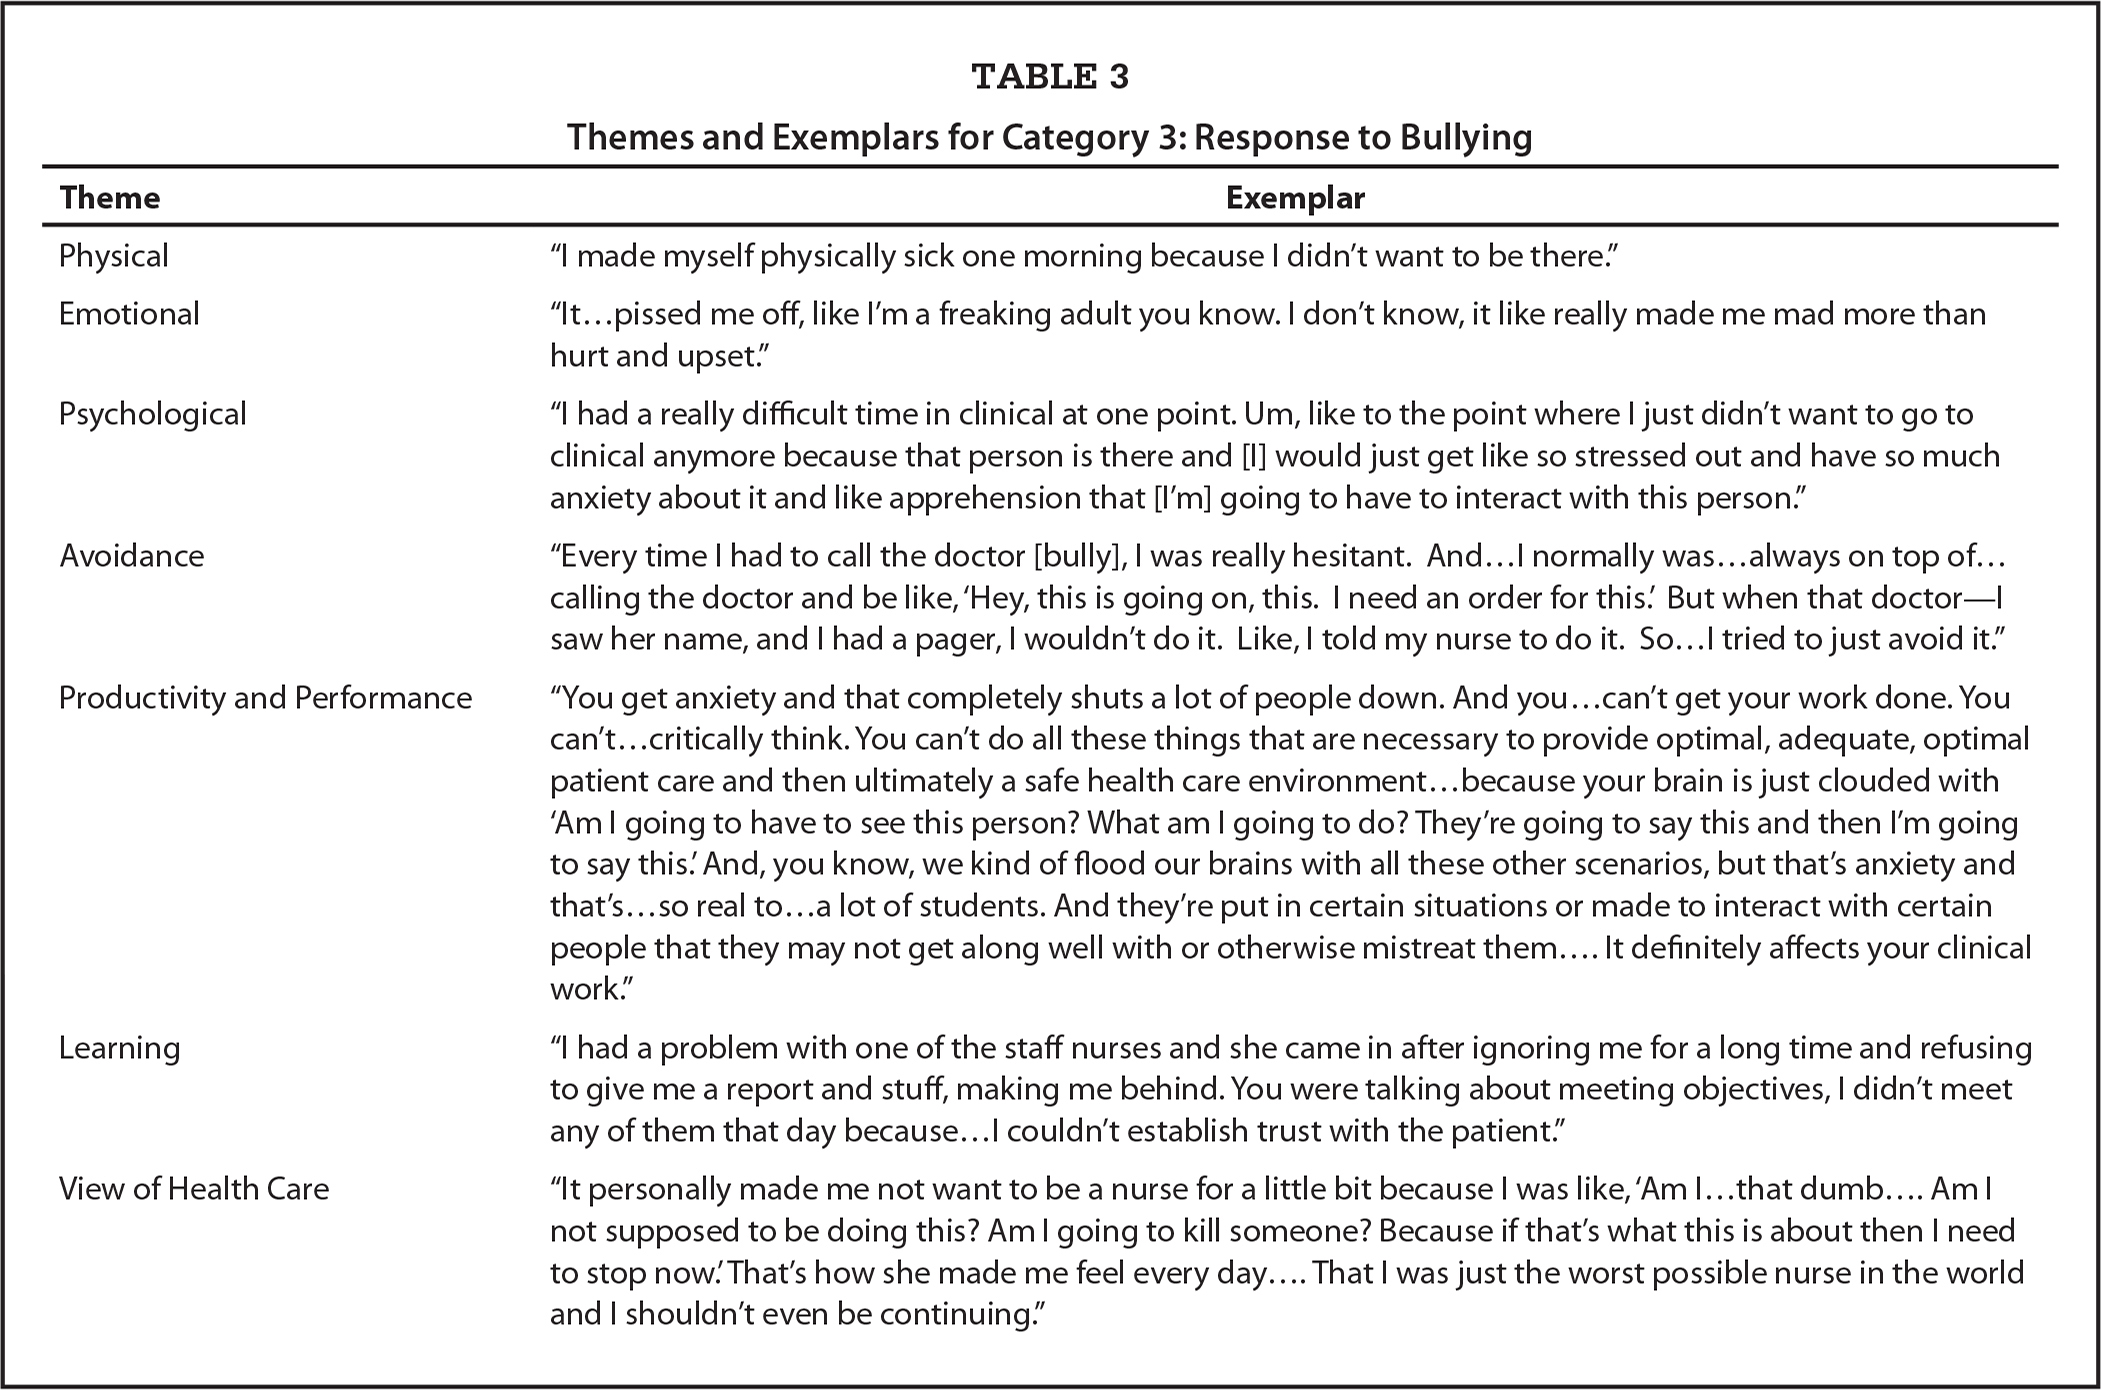 Themes and Exemplars for Category 3: Response to Bullying